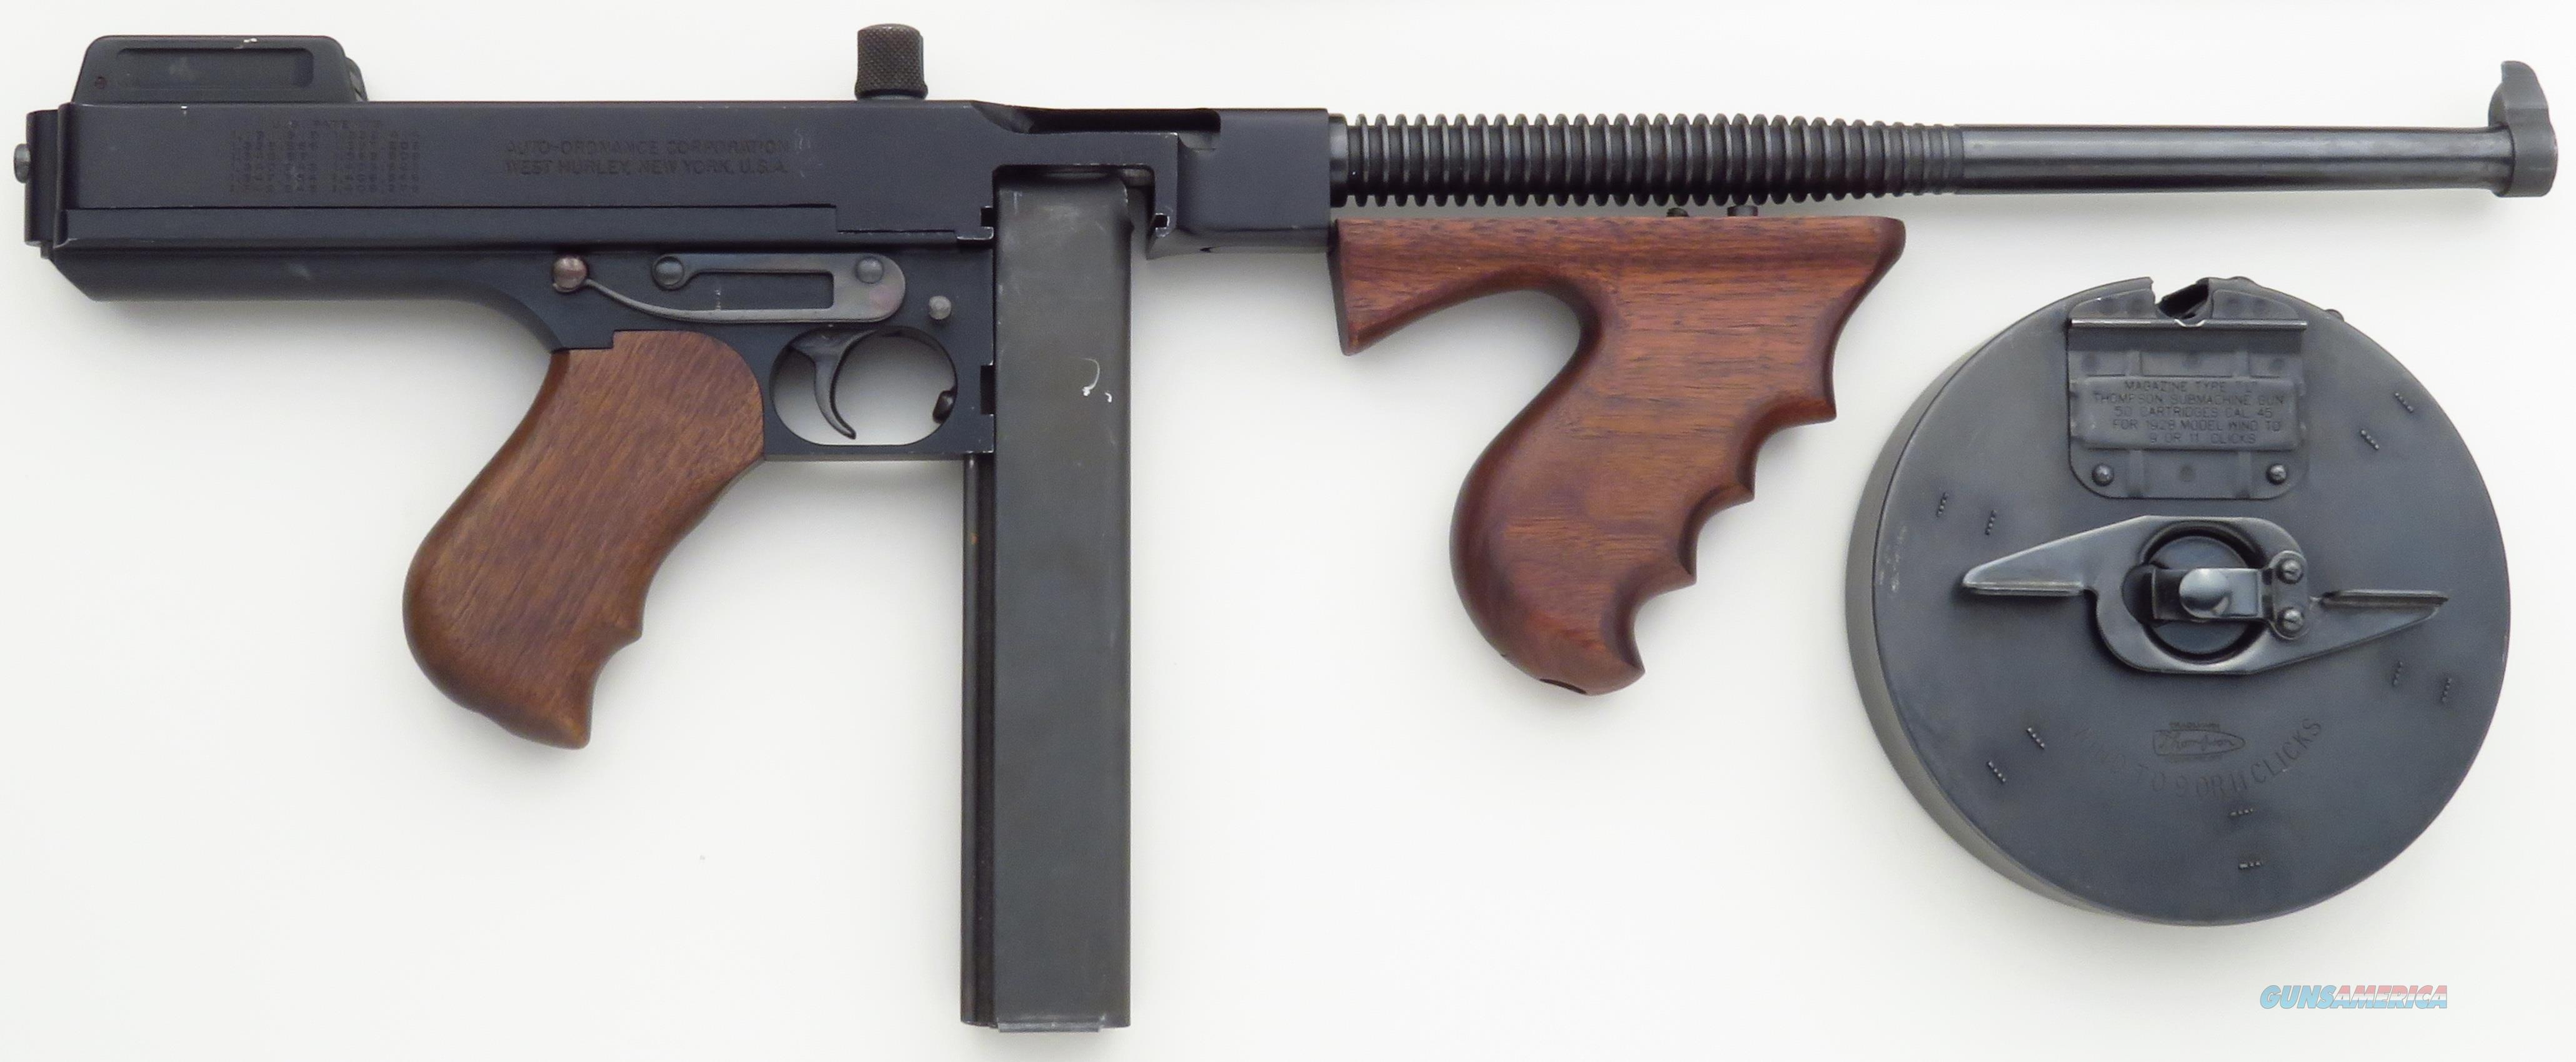 Thompson 1927 A5 pistol, 30 stick and 50 drum, 14.5-inch finned barrel, 98%  Guns > Pistols > Auto Ordnance Pistols